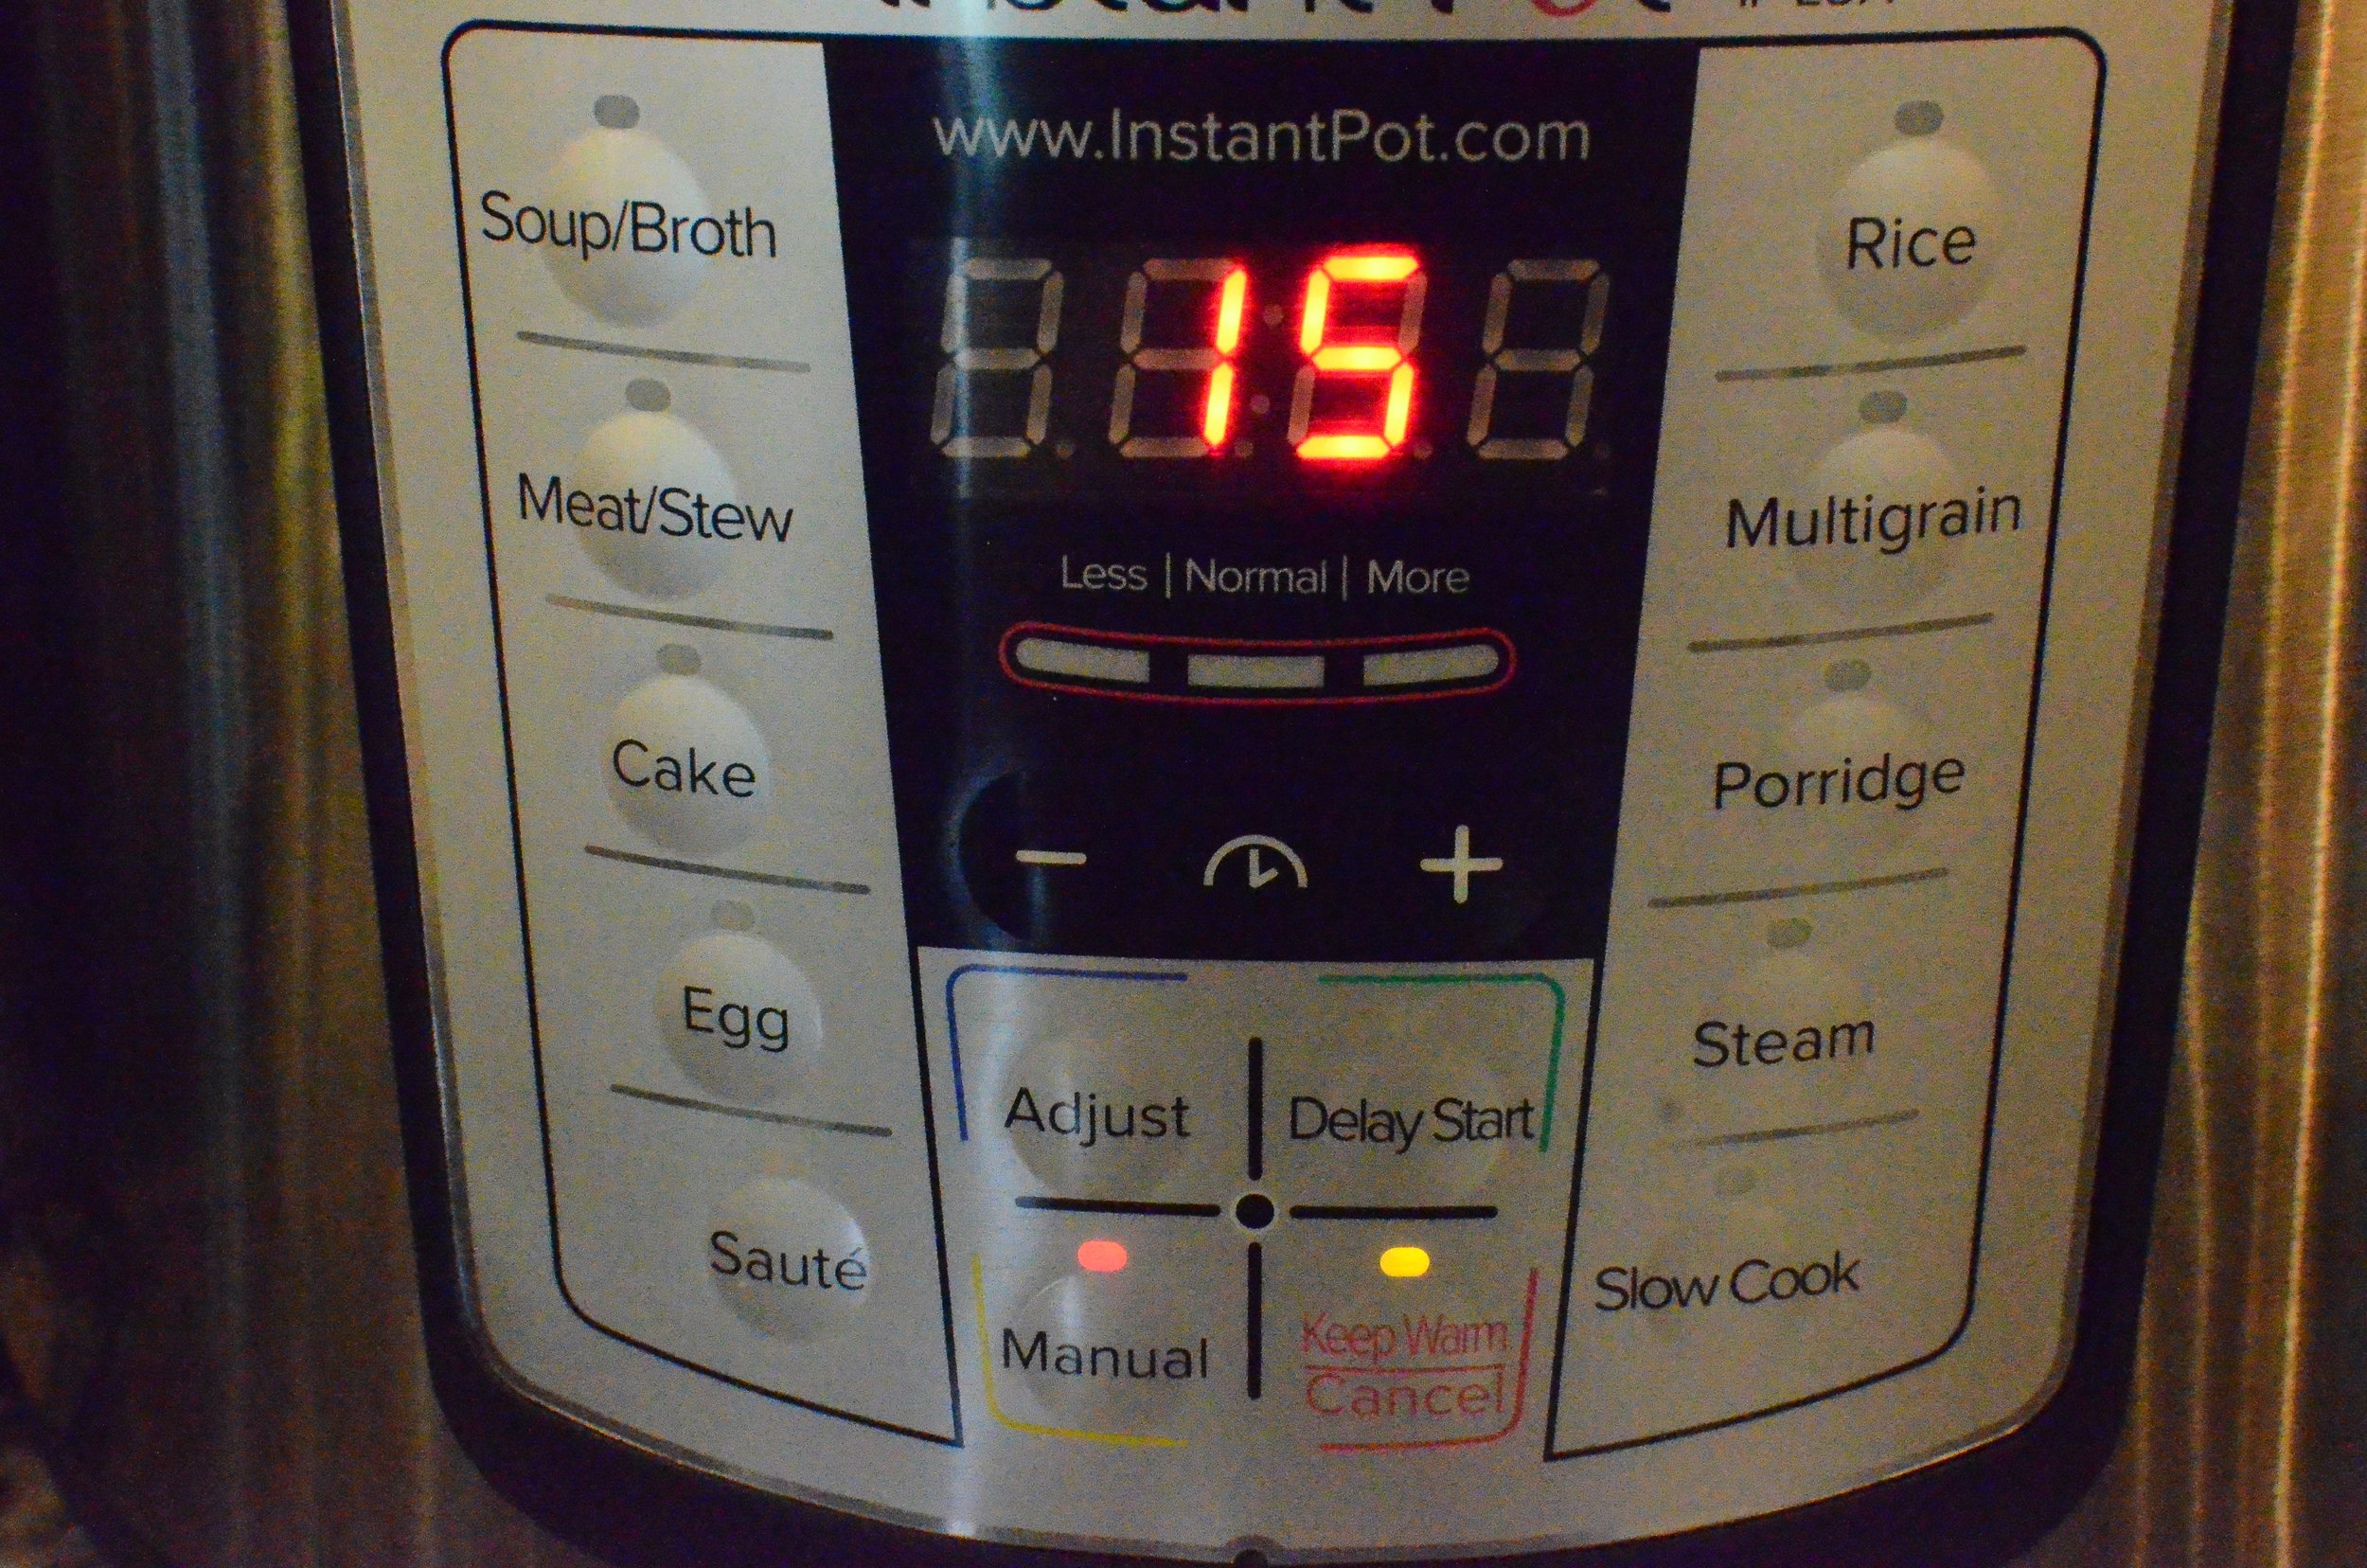 cooking-potatoes-in-an-instant-pot-butteryum